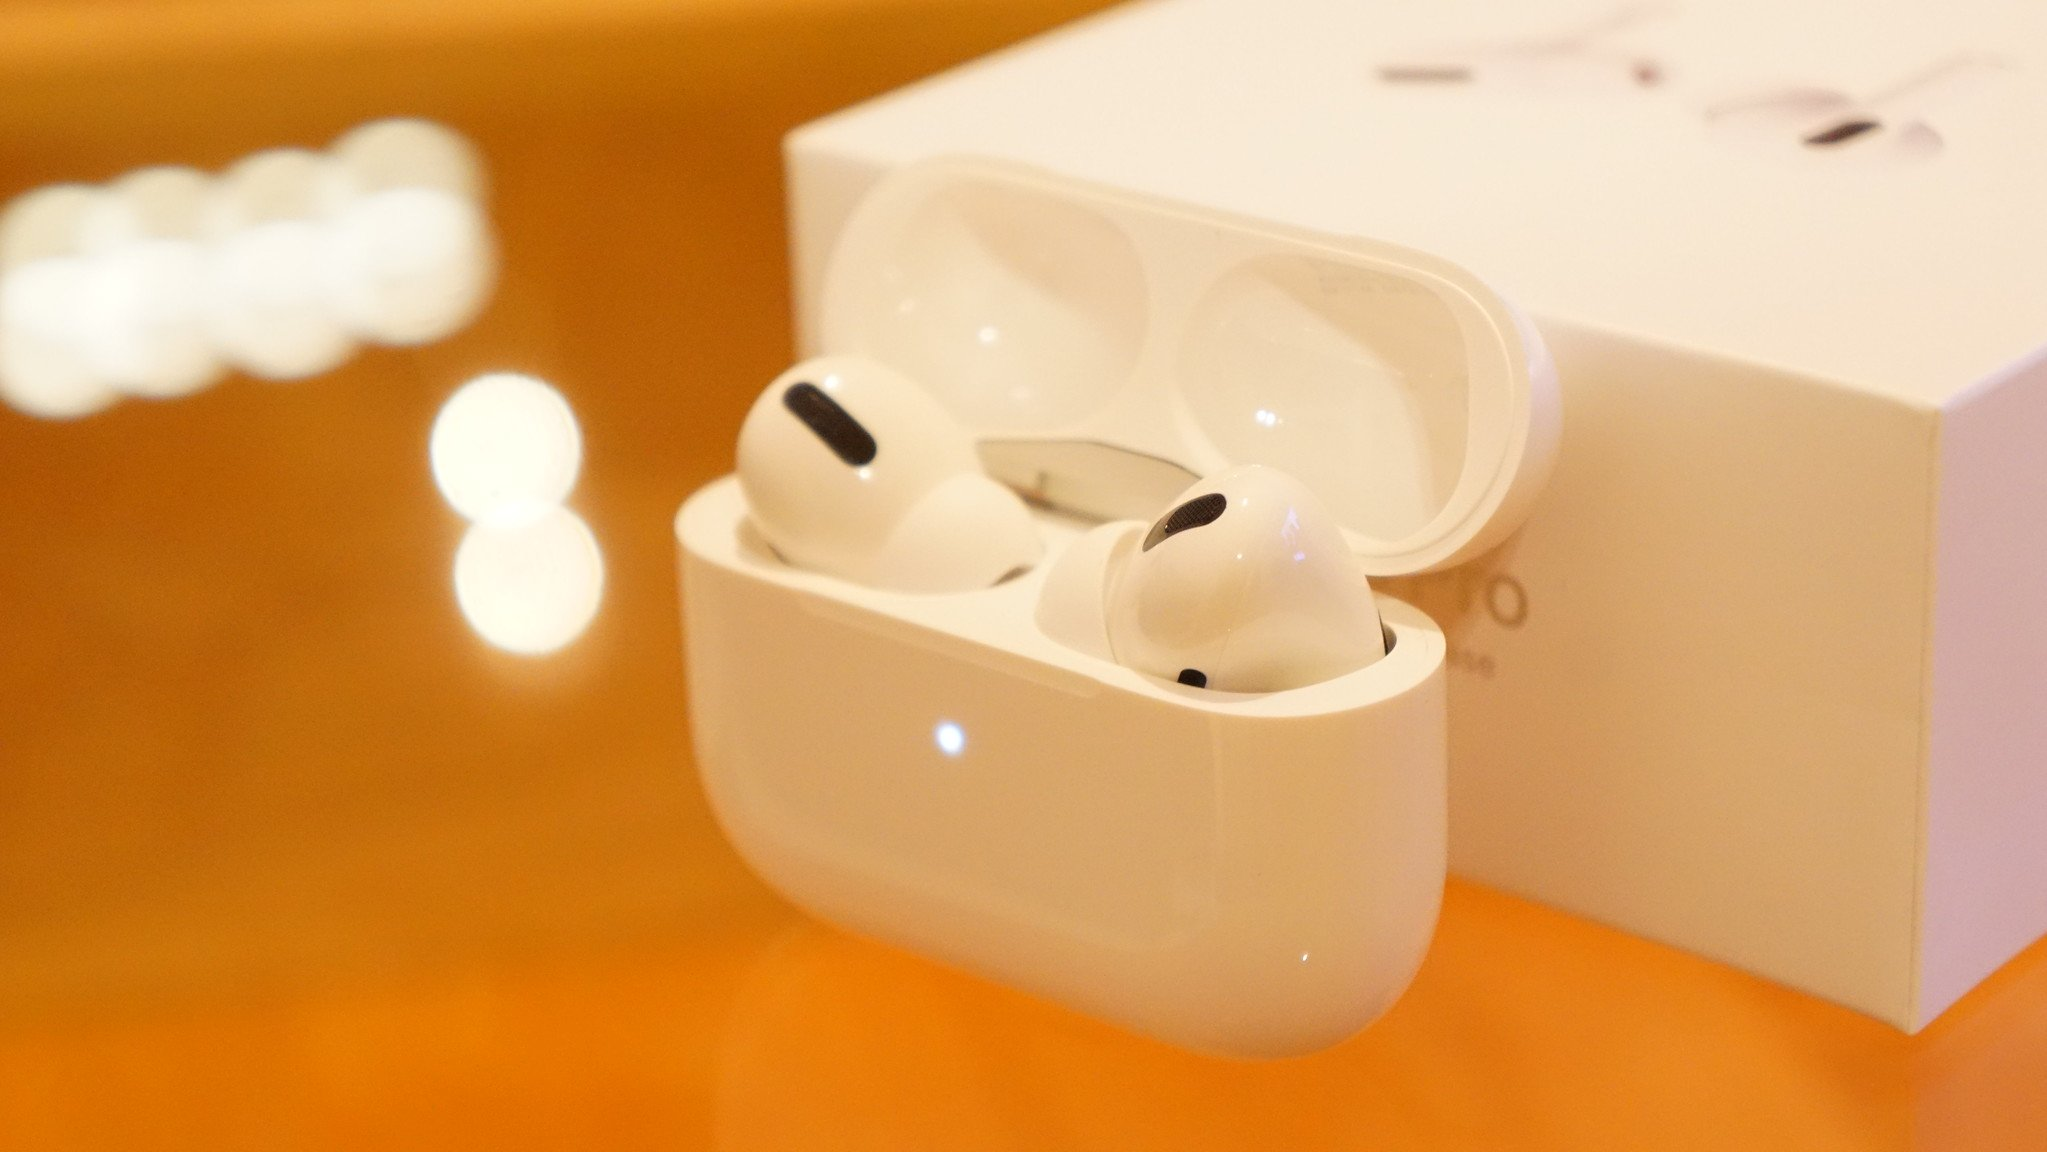 Apple、「AirPods Pro」に発売後初のアップデート配信